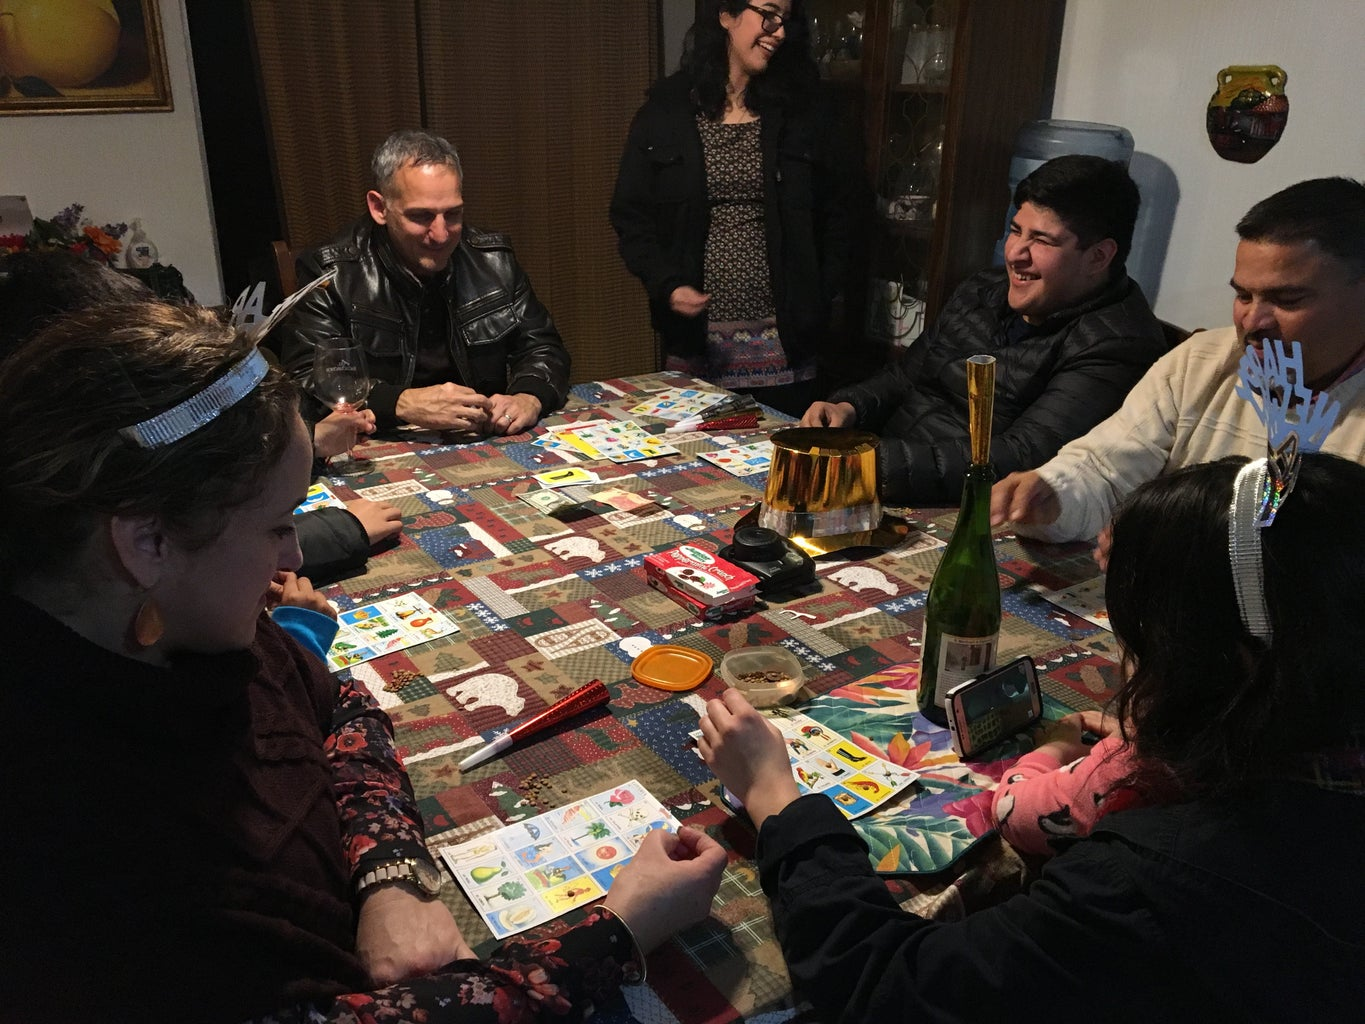 family playing loteria, a Mexican bingo game